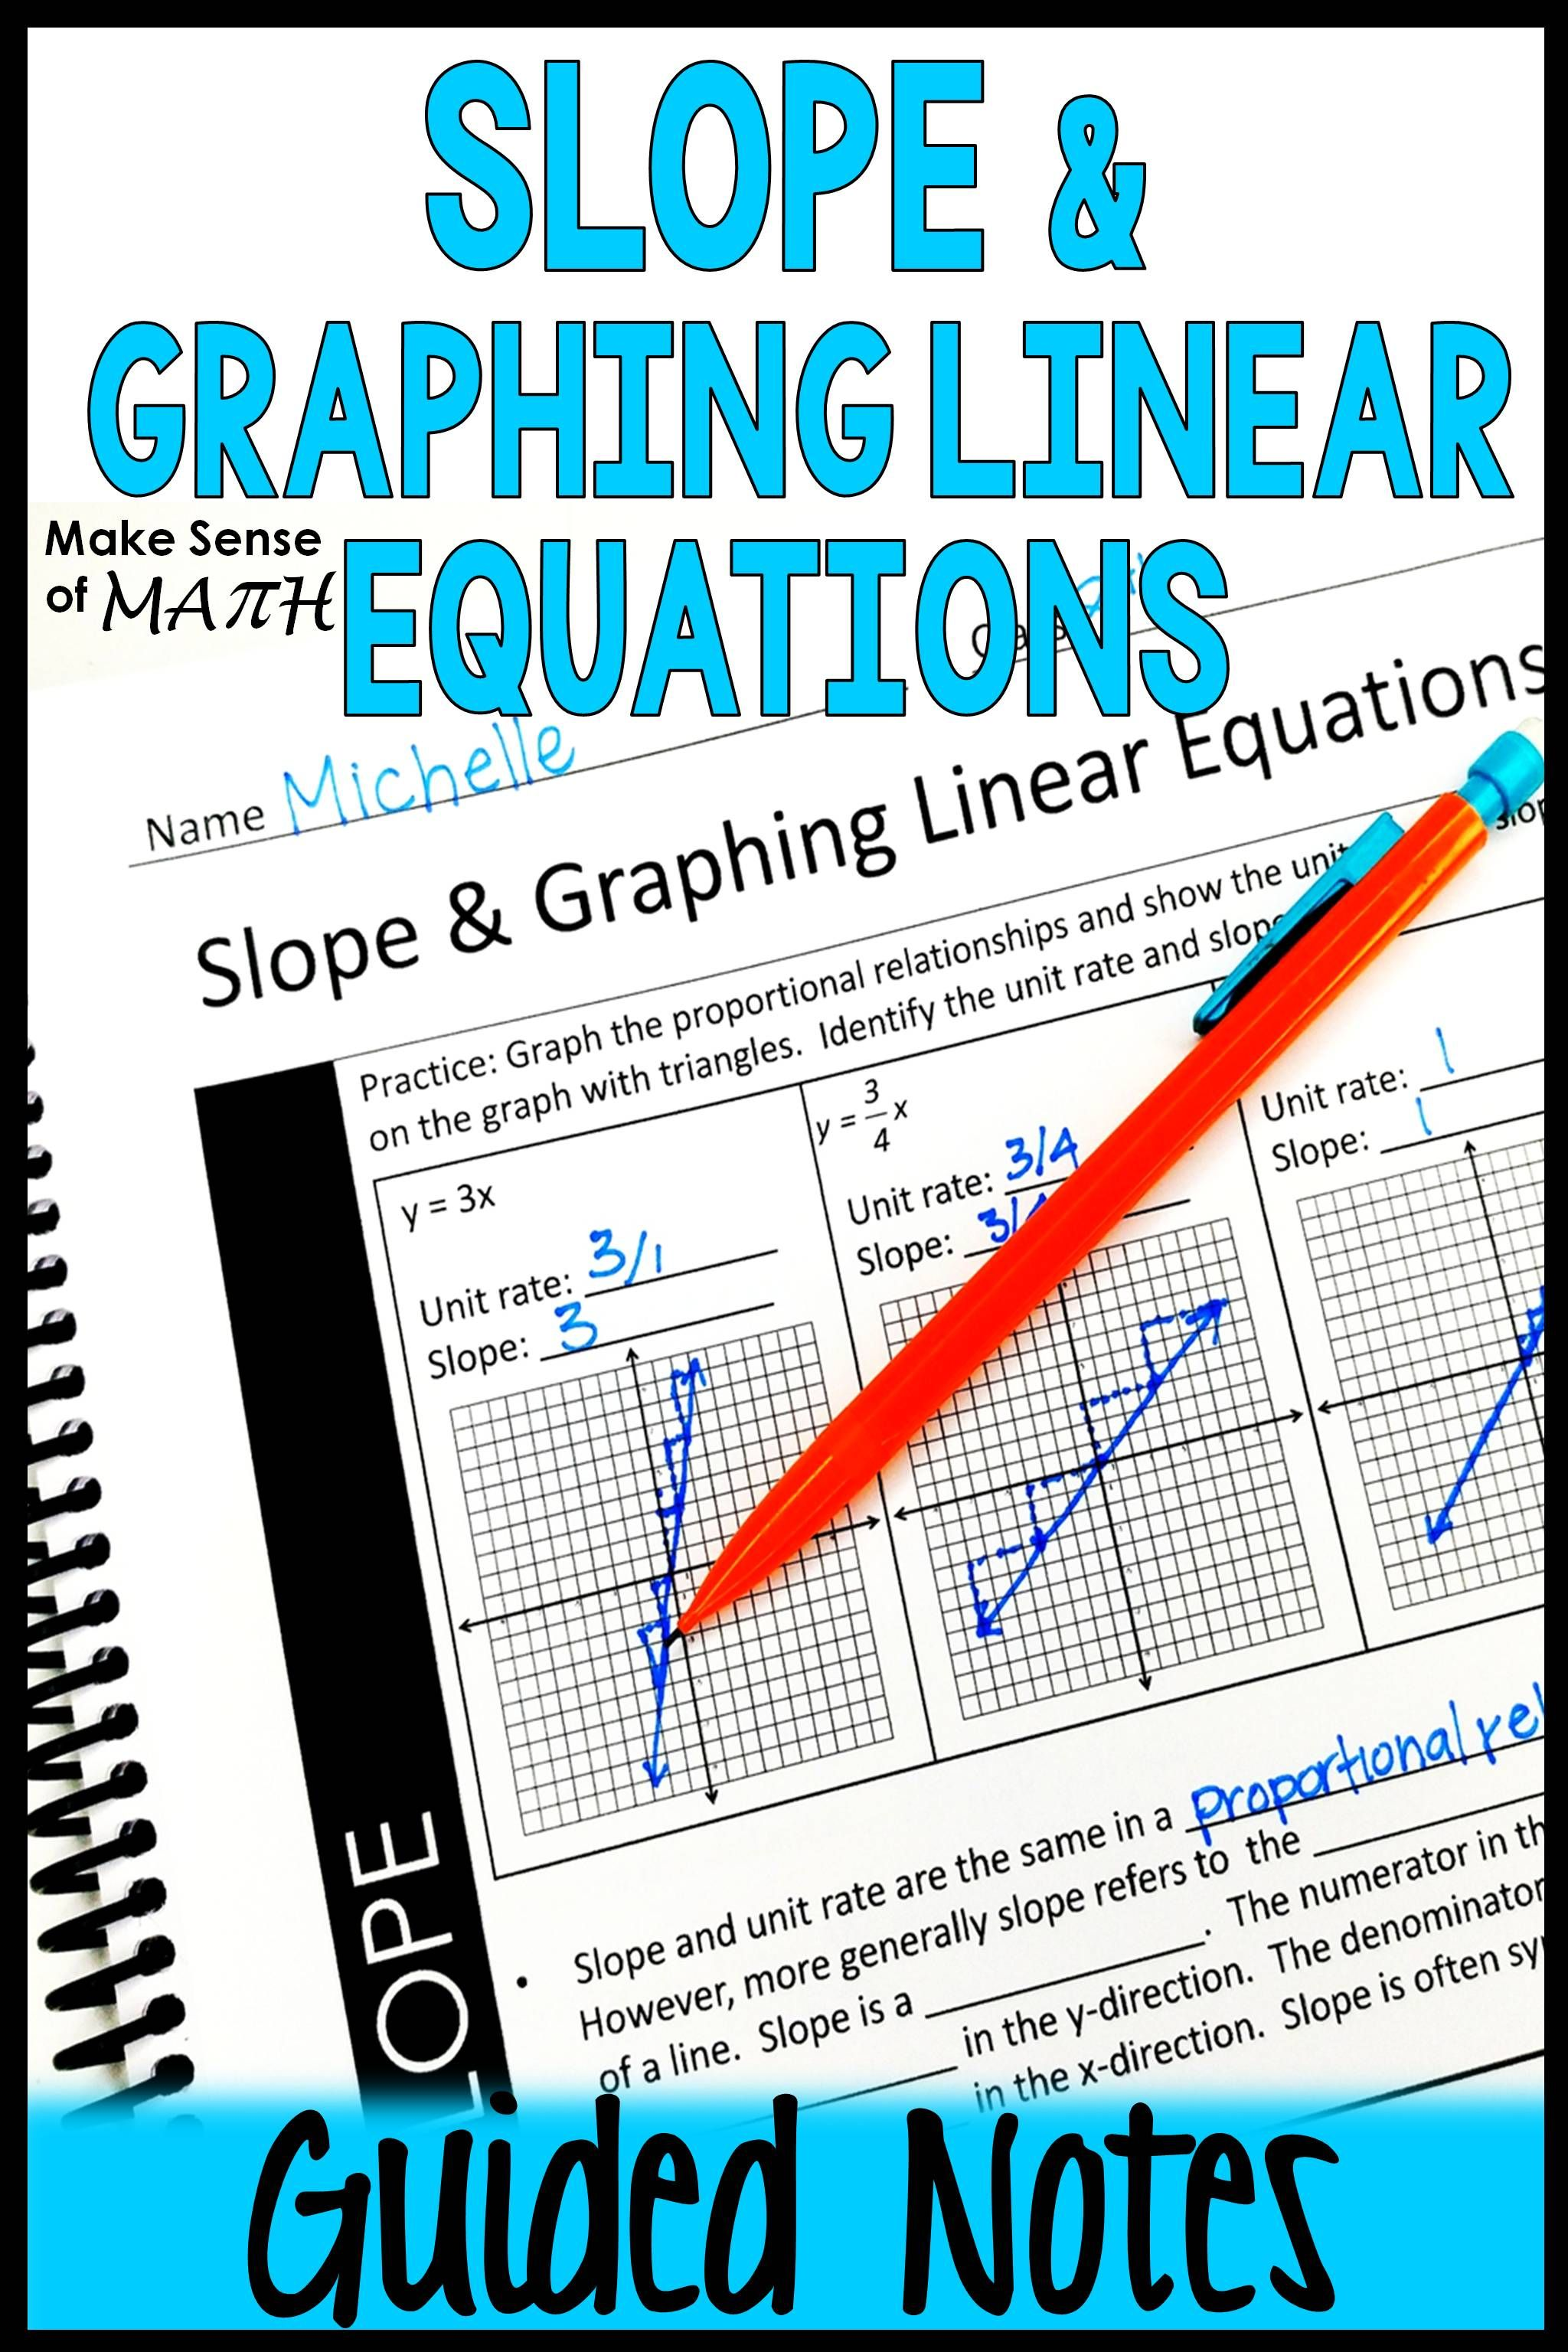 hight resolution of Slope and Graphing Linear Equations Notes   Graphing linear equations